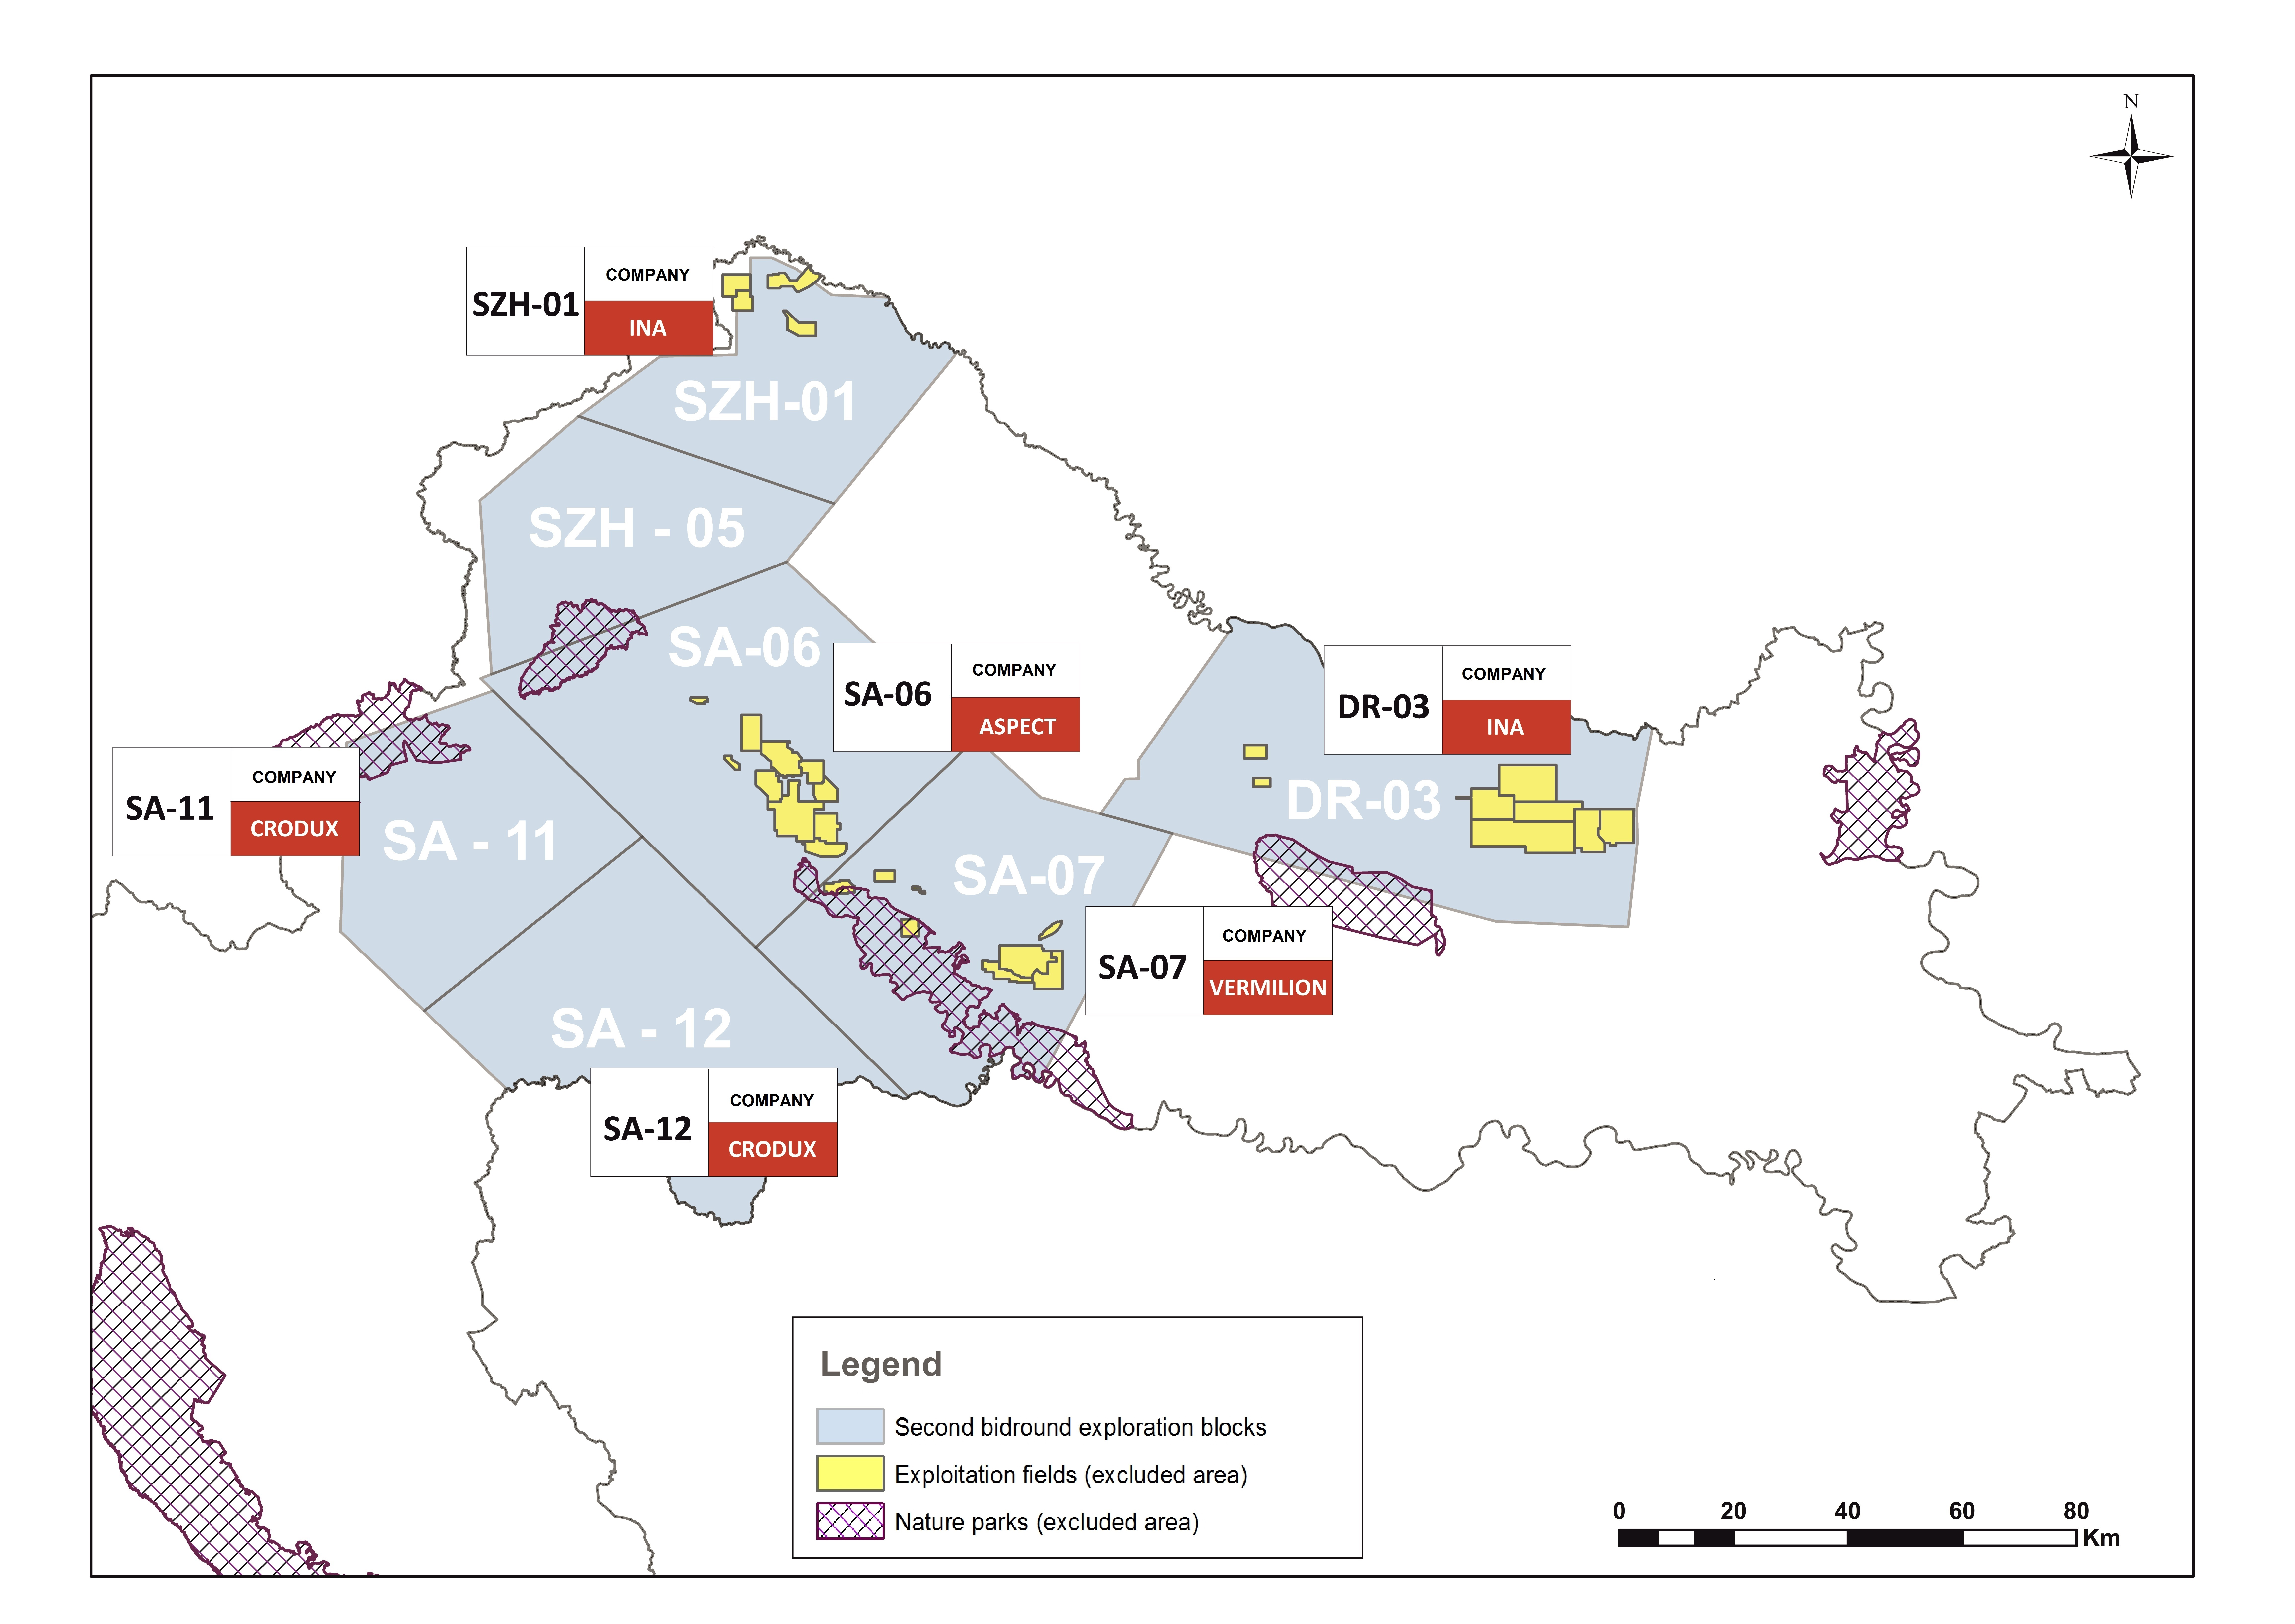 Croatia awards six onshore oil and gas exploration licences in Pannonian Basin